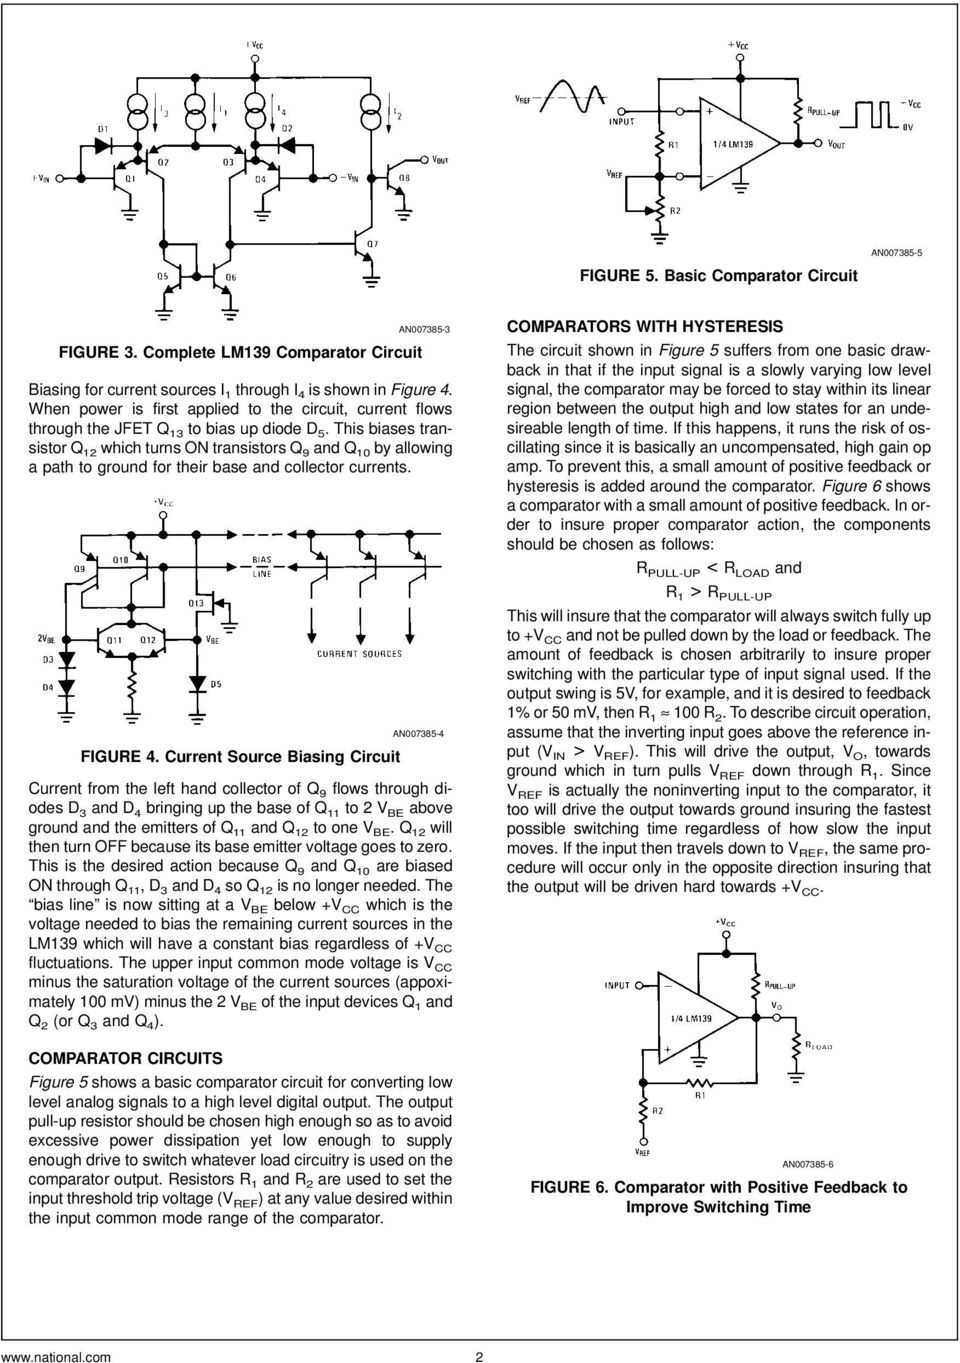 Lm139 Lm239 Lm339 A Quad Of Independently Functioning Comparators Pdf Circuit Used In Experiment The Diode Is 1n914 Silicon This Biases Transistor Q 12 Which Turns On Transistors 9 And 10 By Allowing